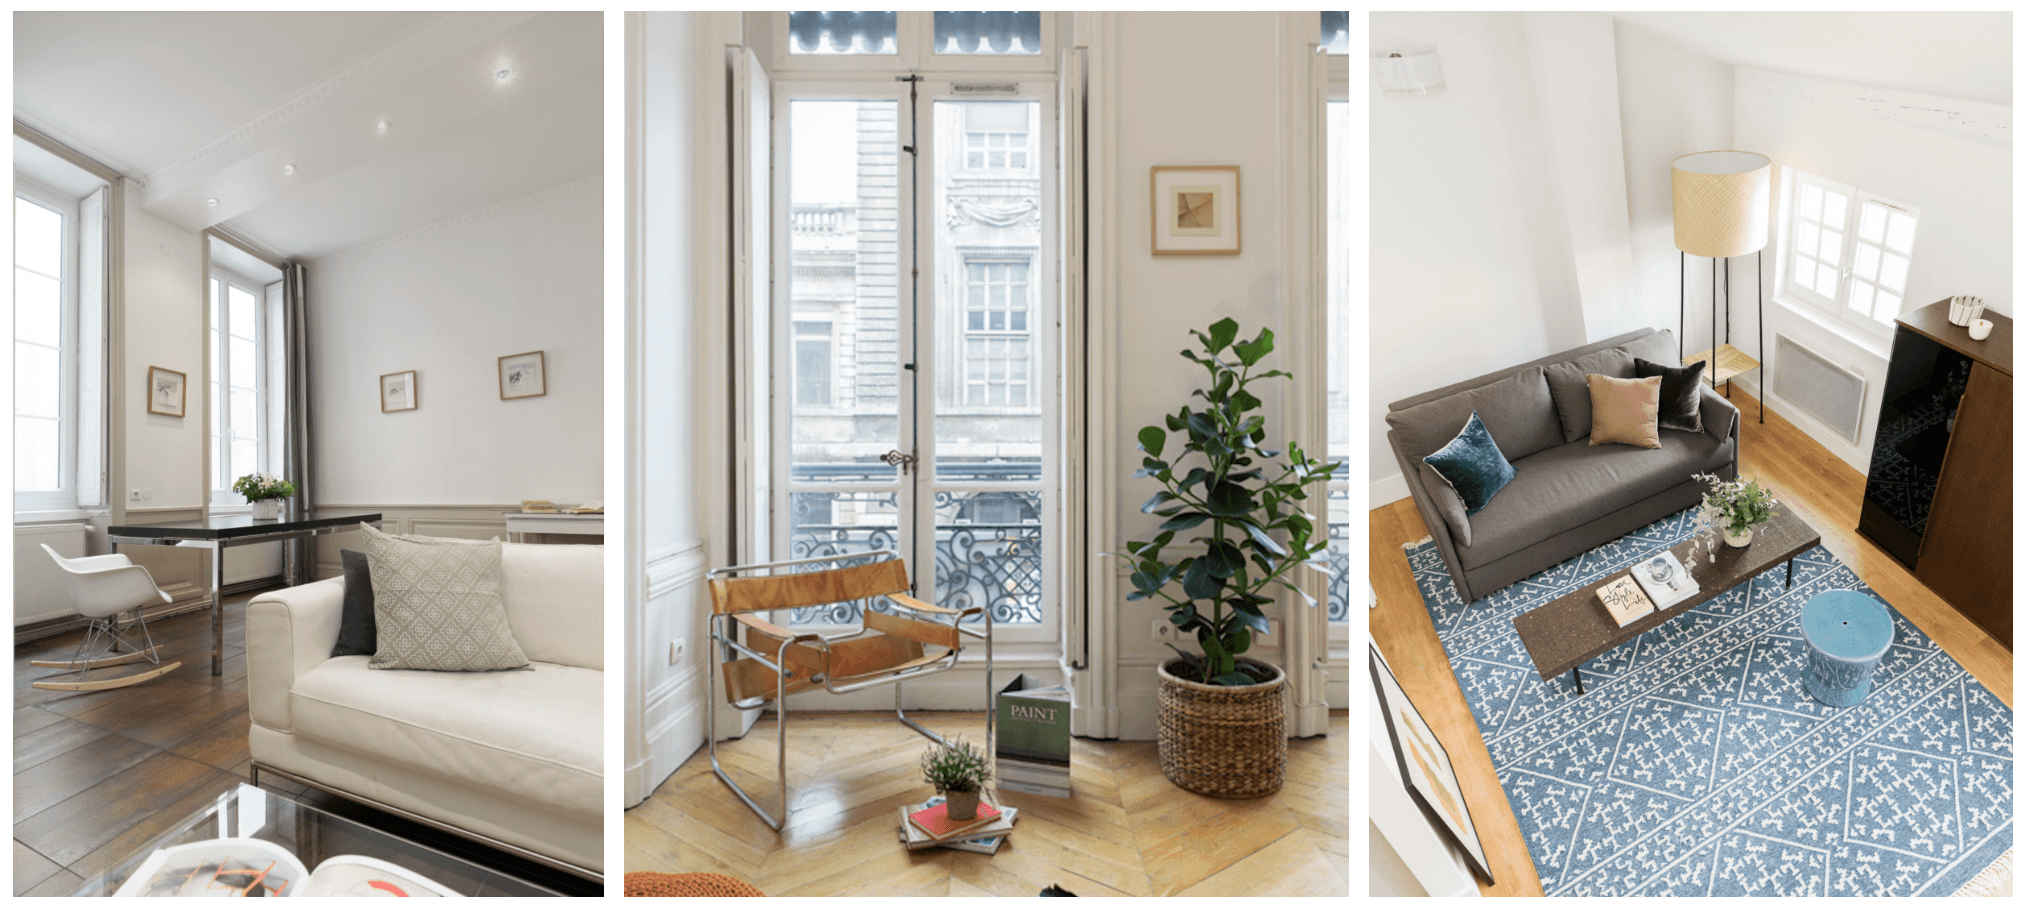 bumper-immobilier-appartement-vente-homestaging-marketing-lifestyle-decoration-7.png